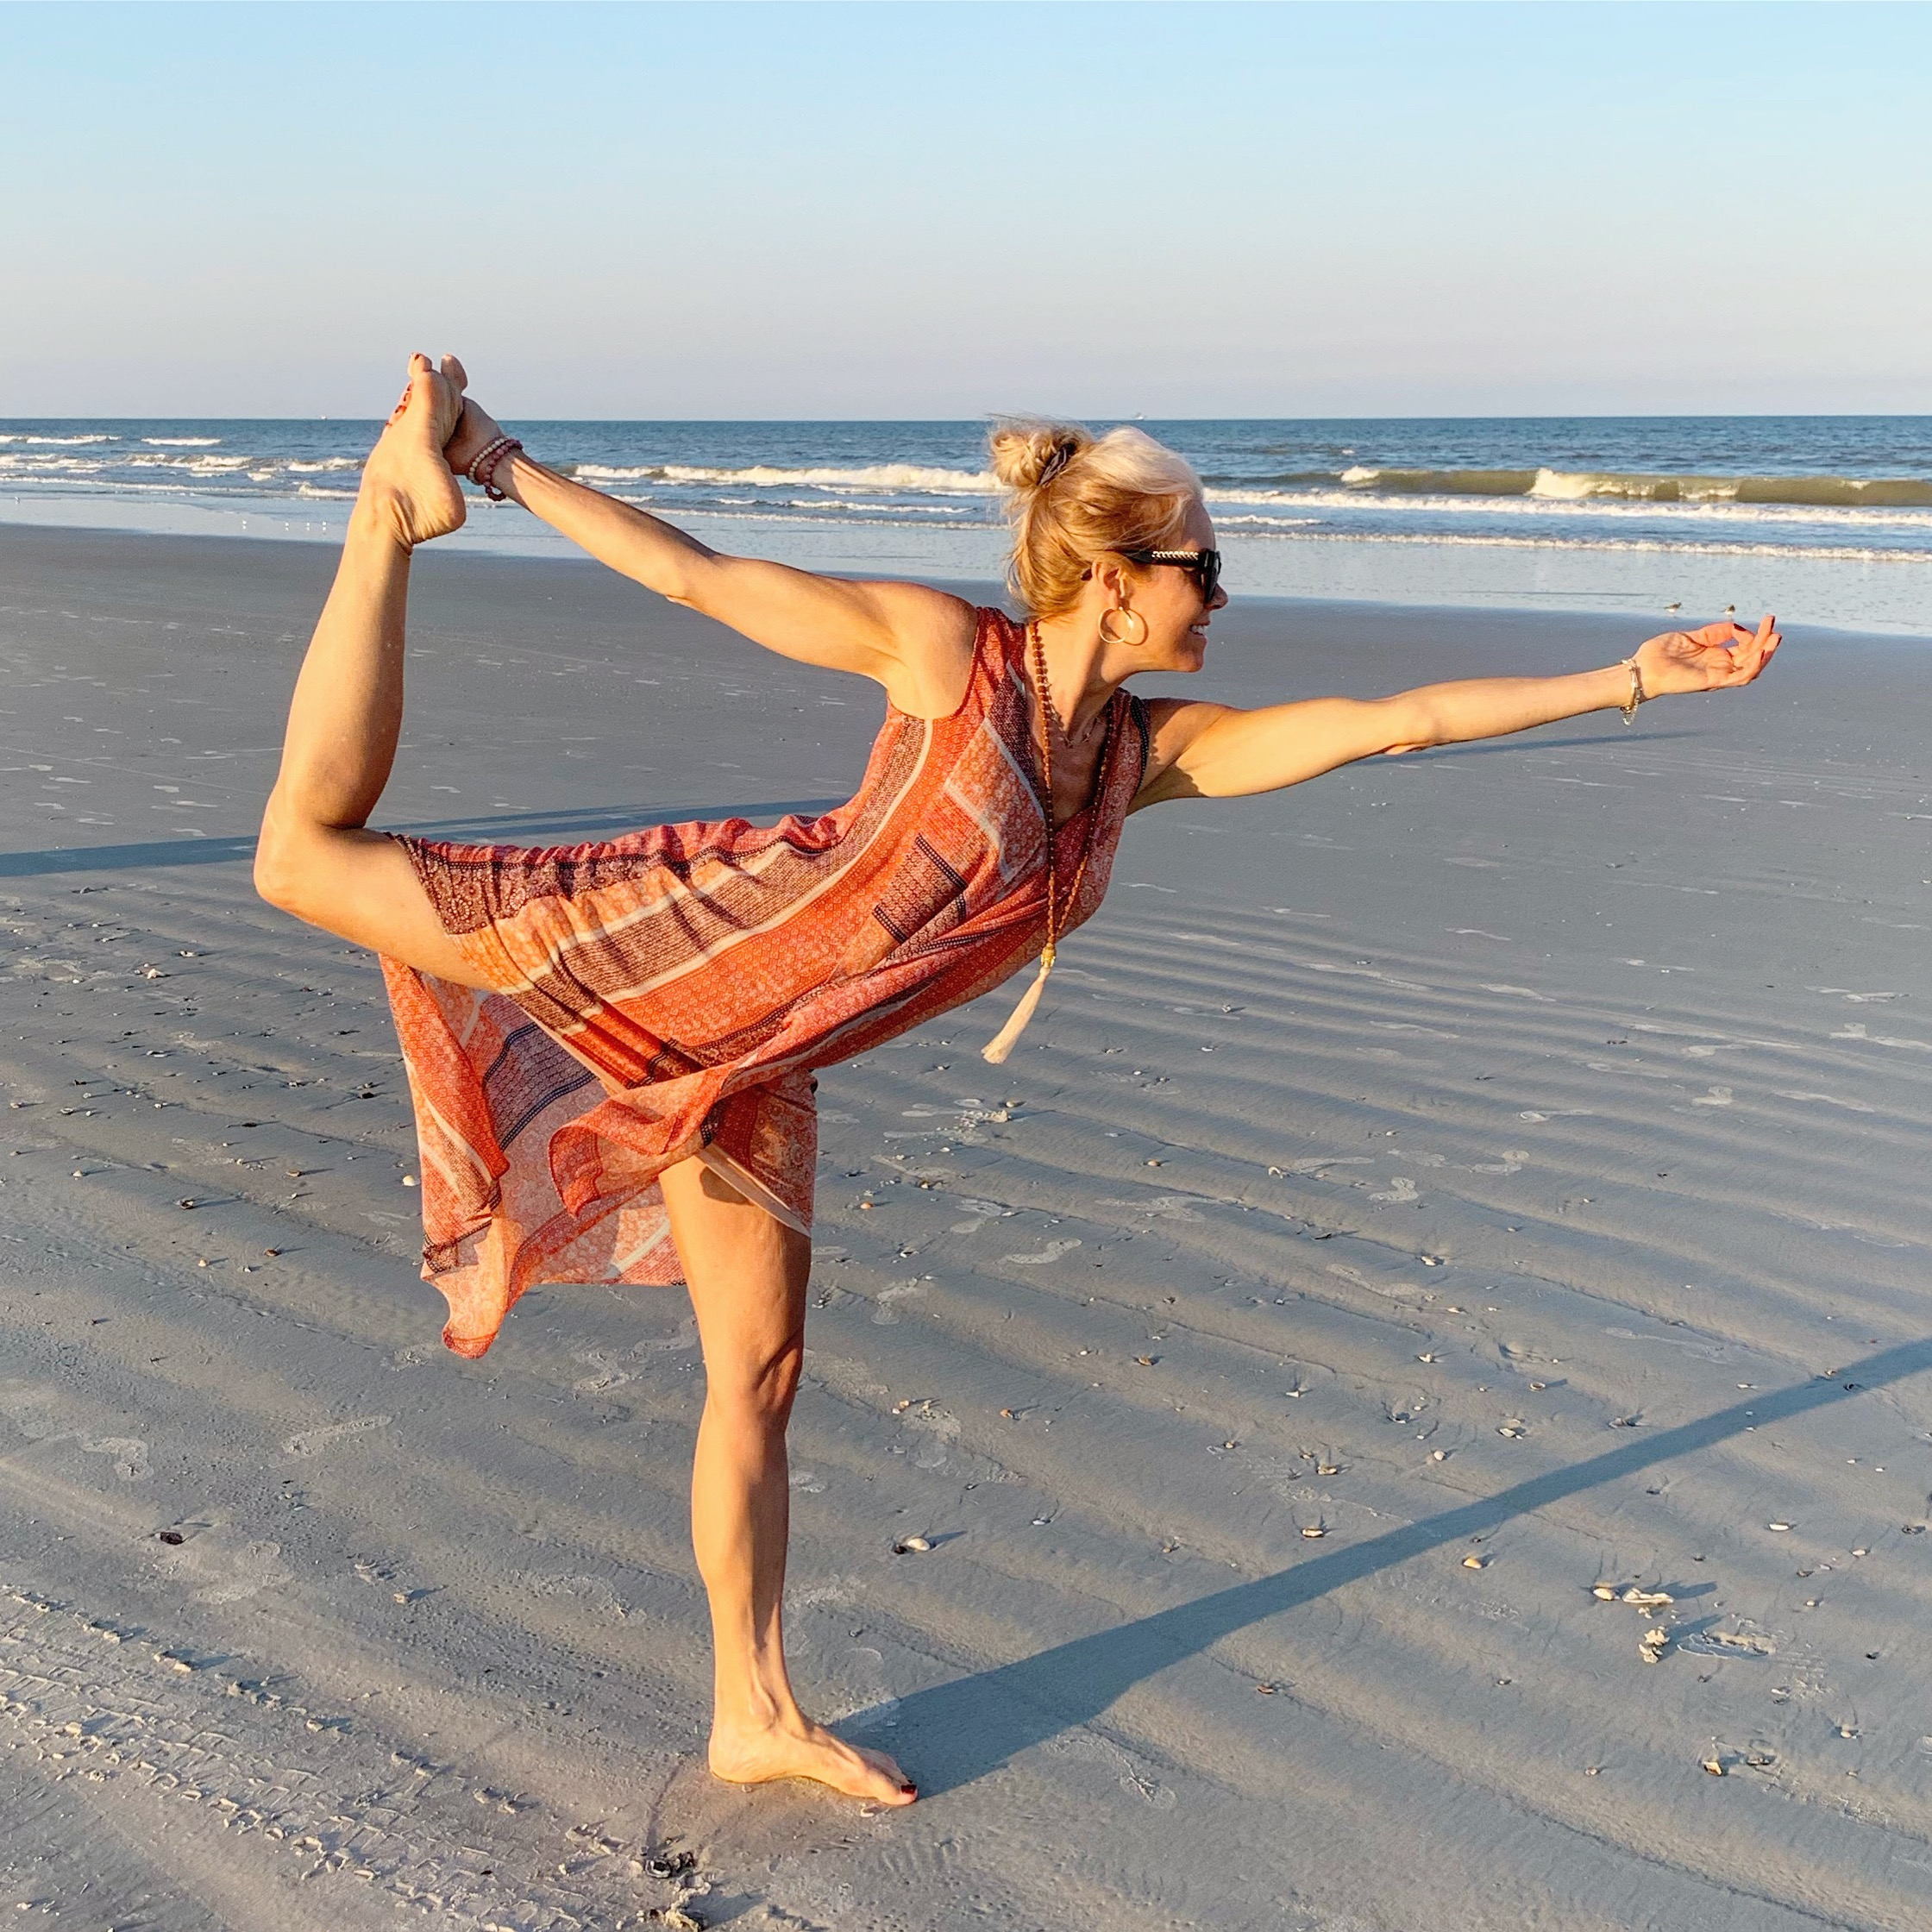 It's impossible for me to stress or feel anything other than JOY while in nature, especially when at the BEACH in my favorite yoga pose!